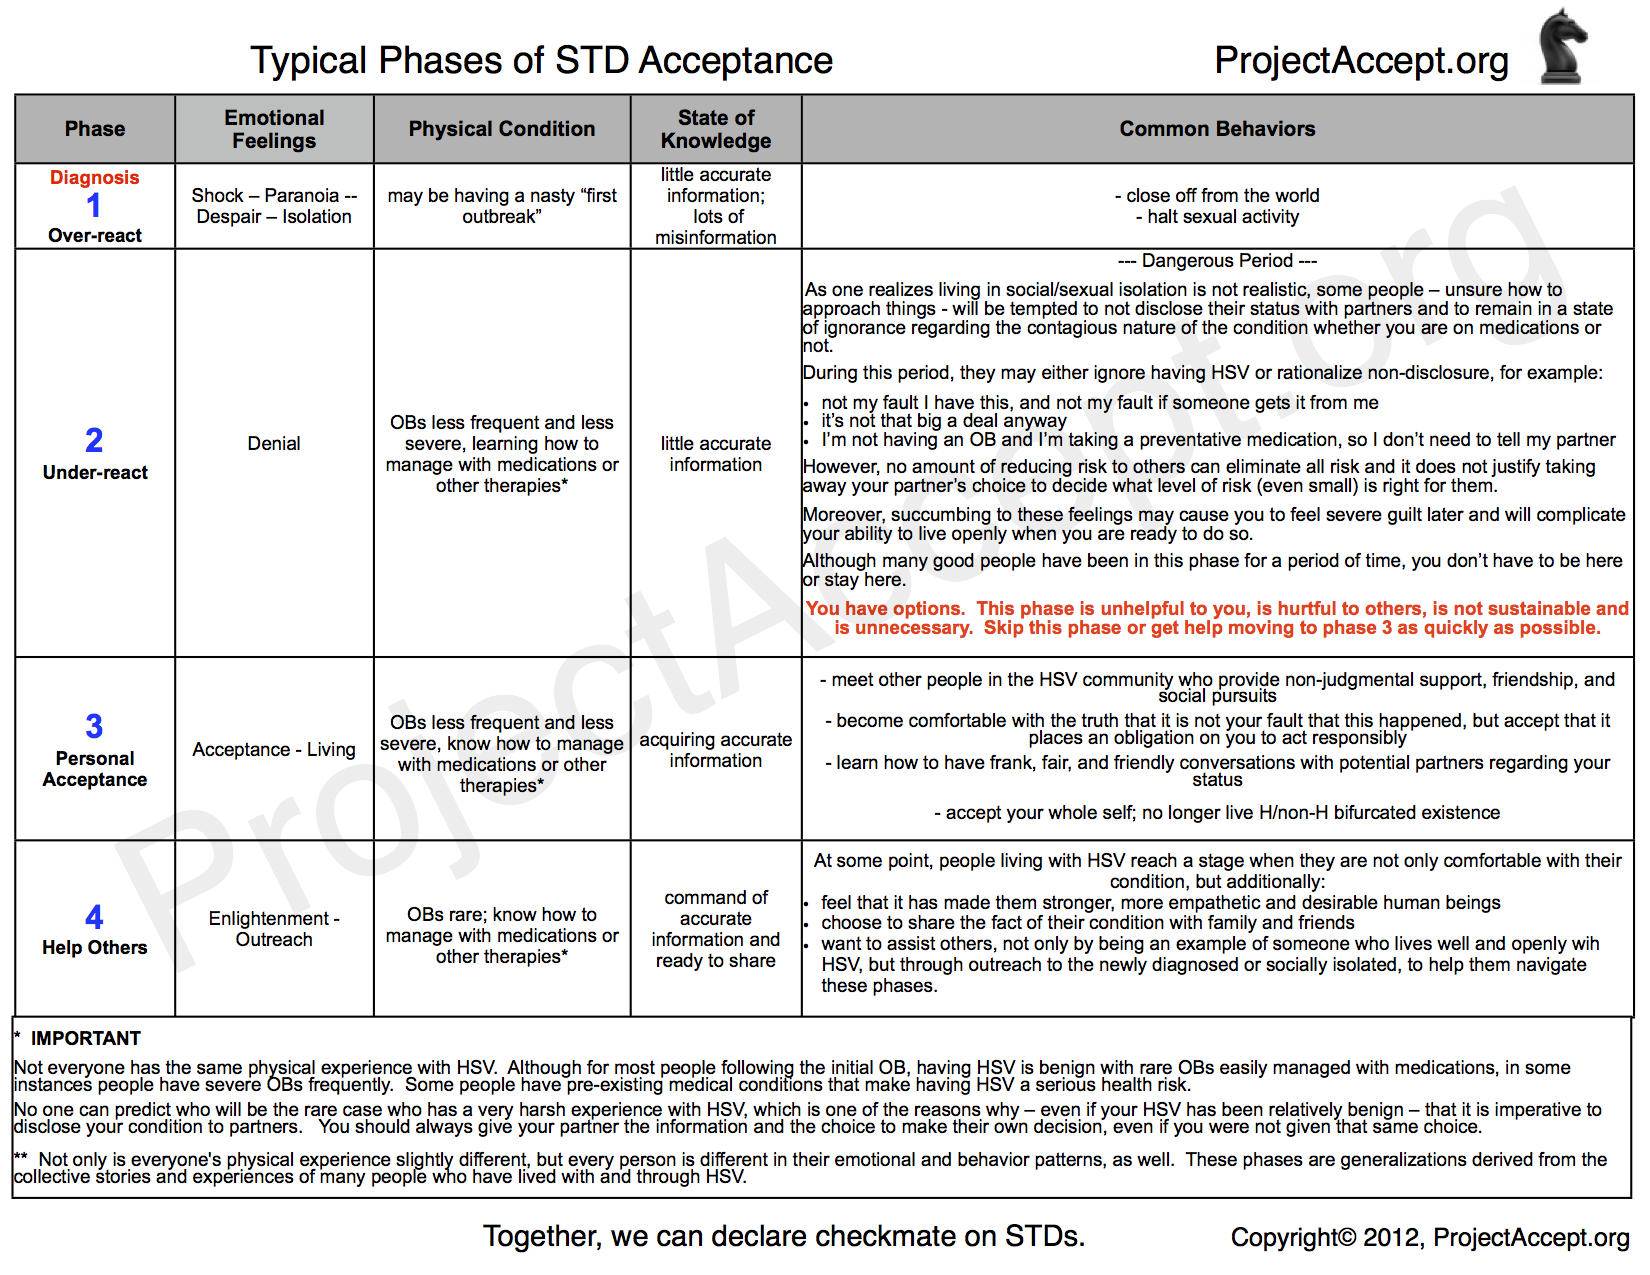 Phases of STD Acceptance - ProjectAccept